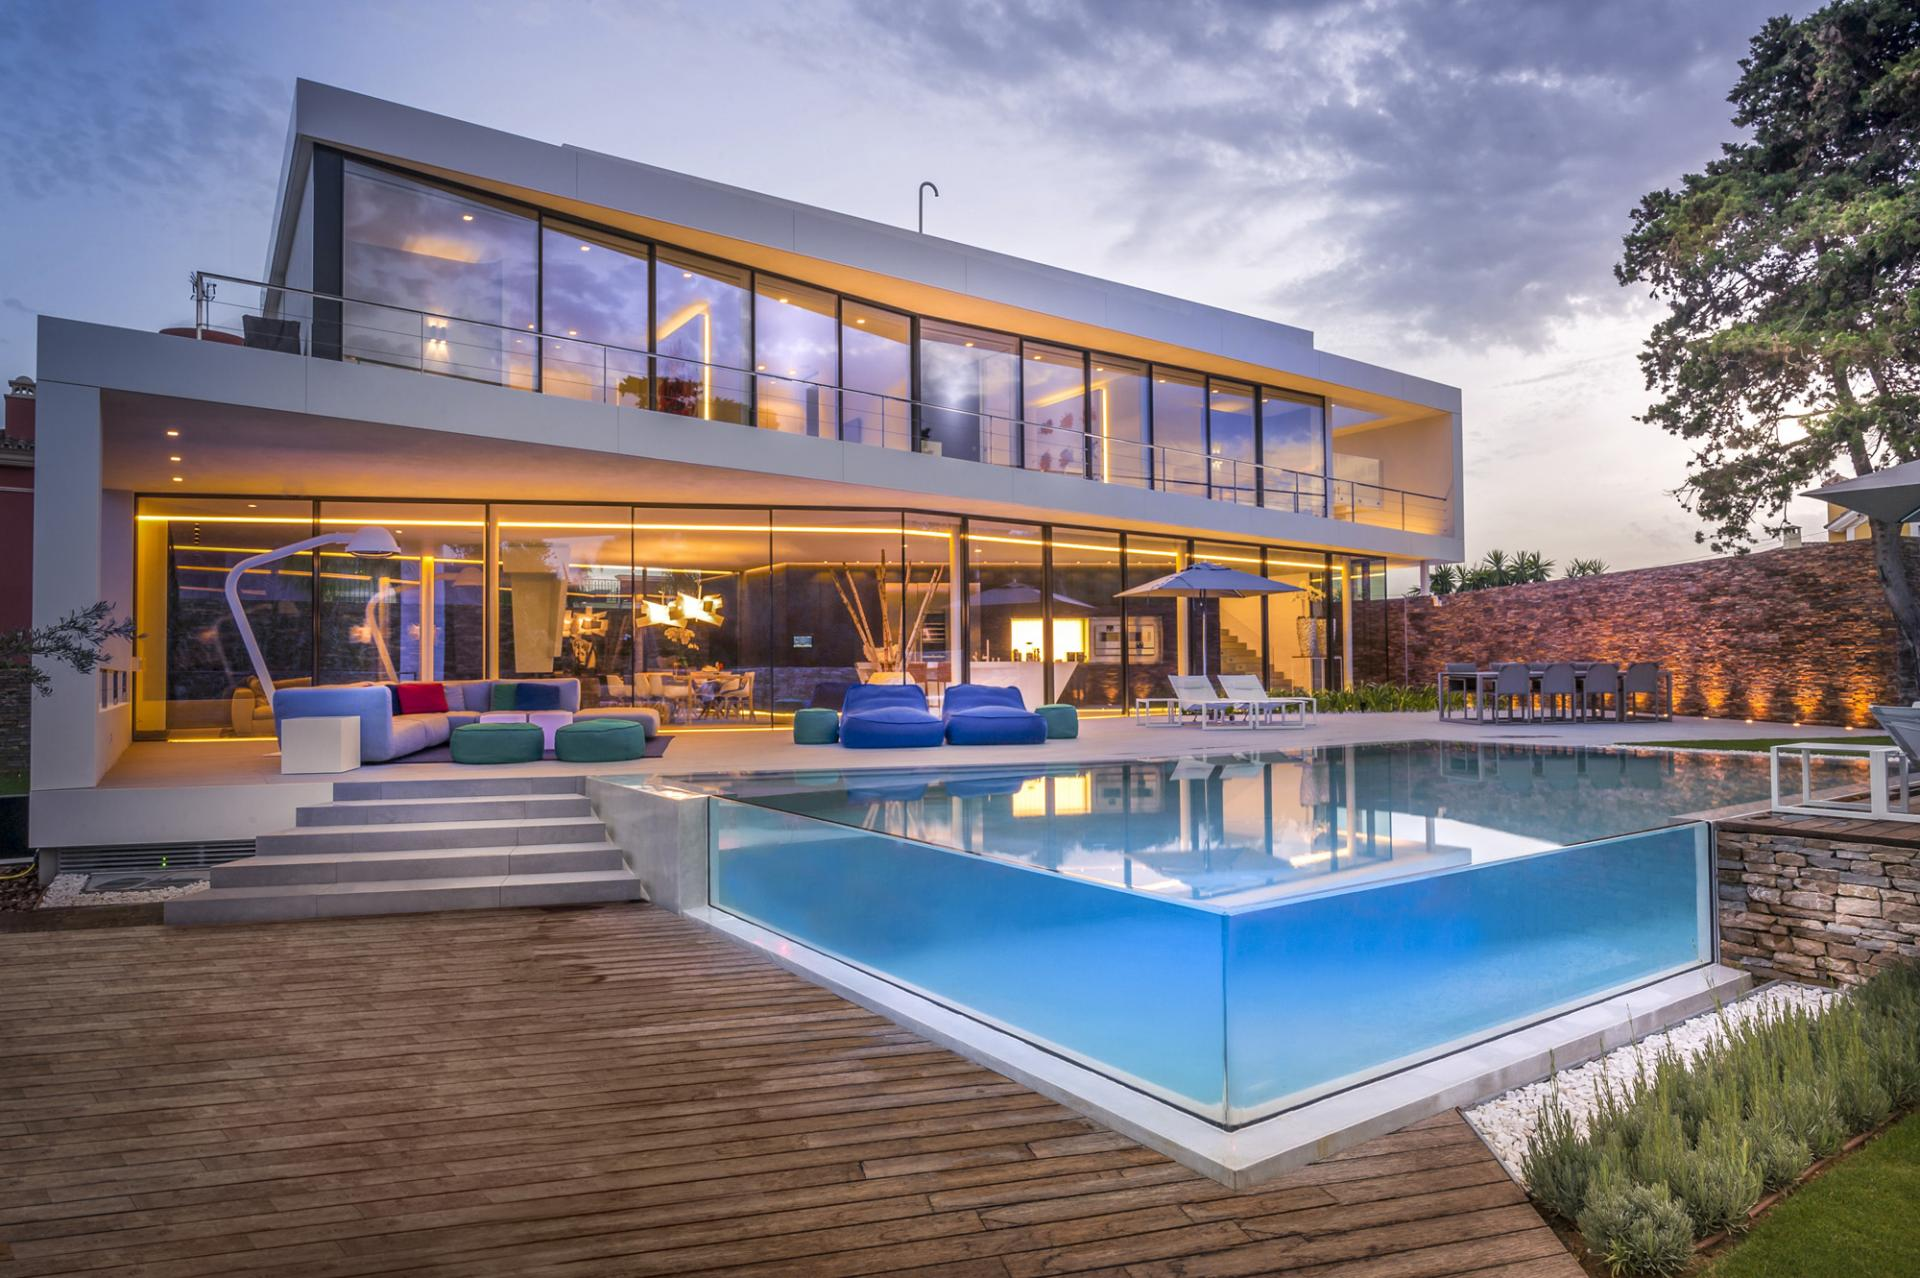 Pool With Glass Walls - A cool beachfront villa with geometric architecture